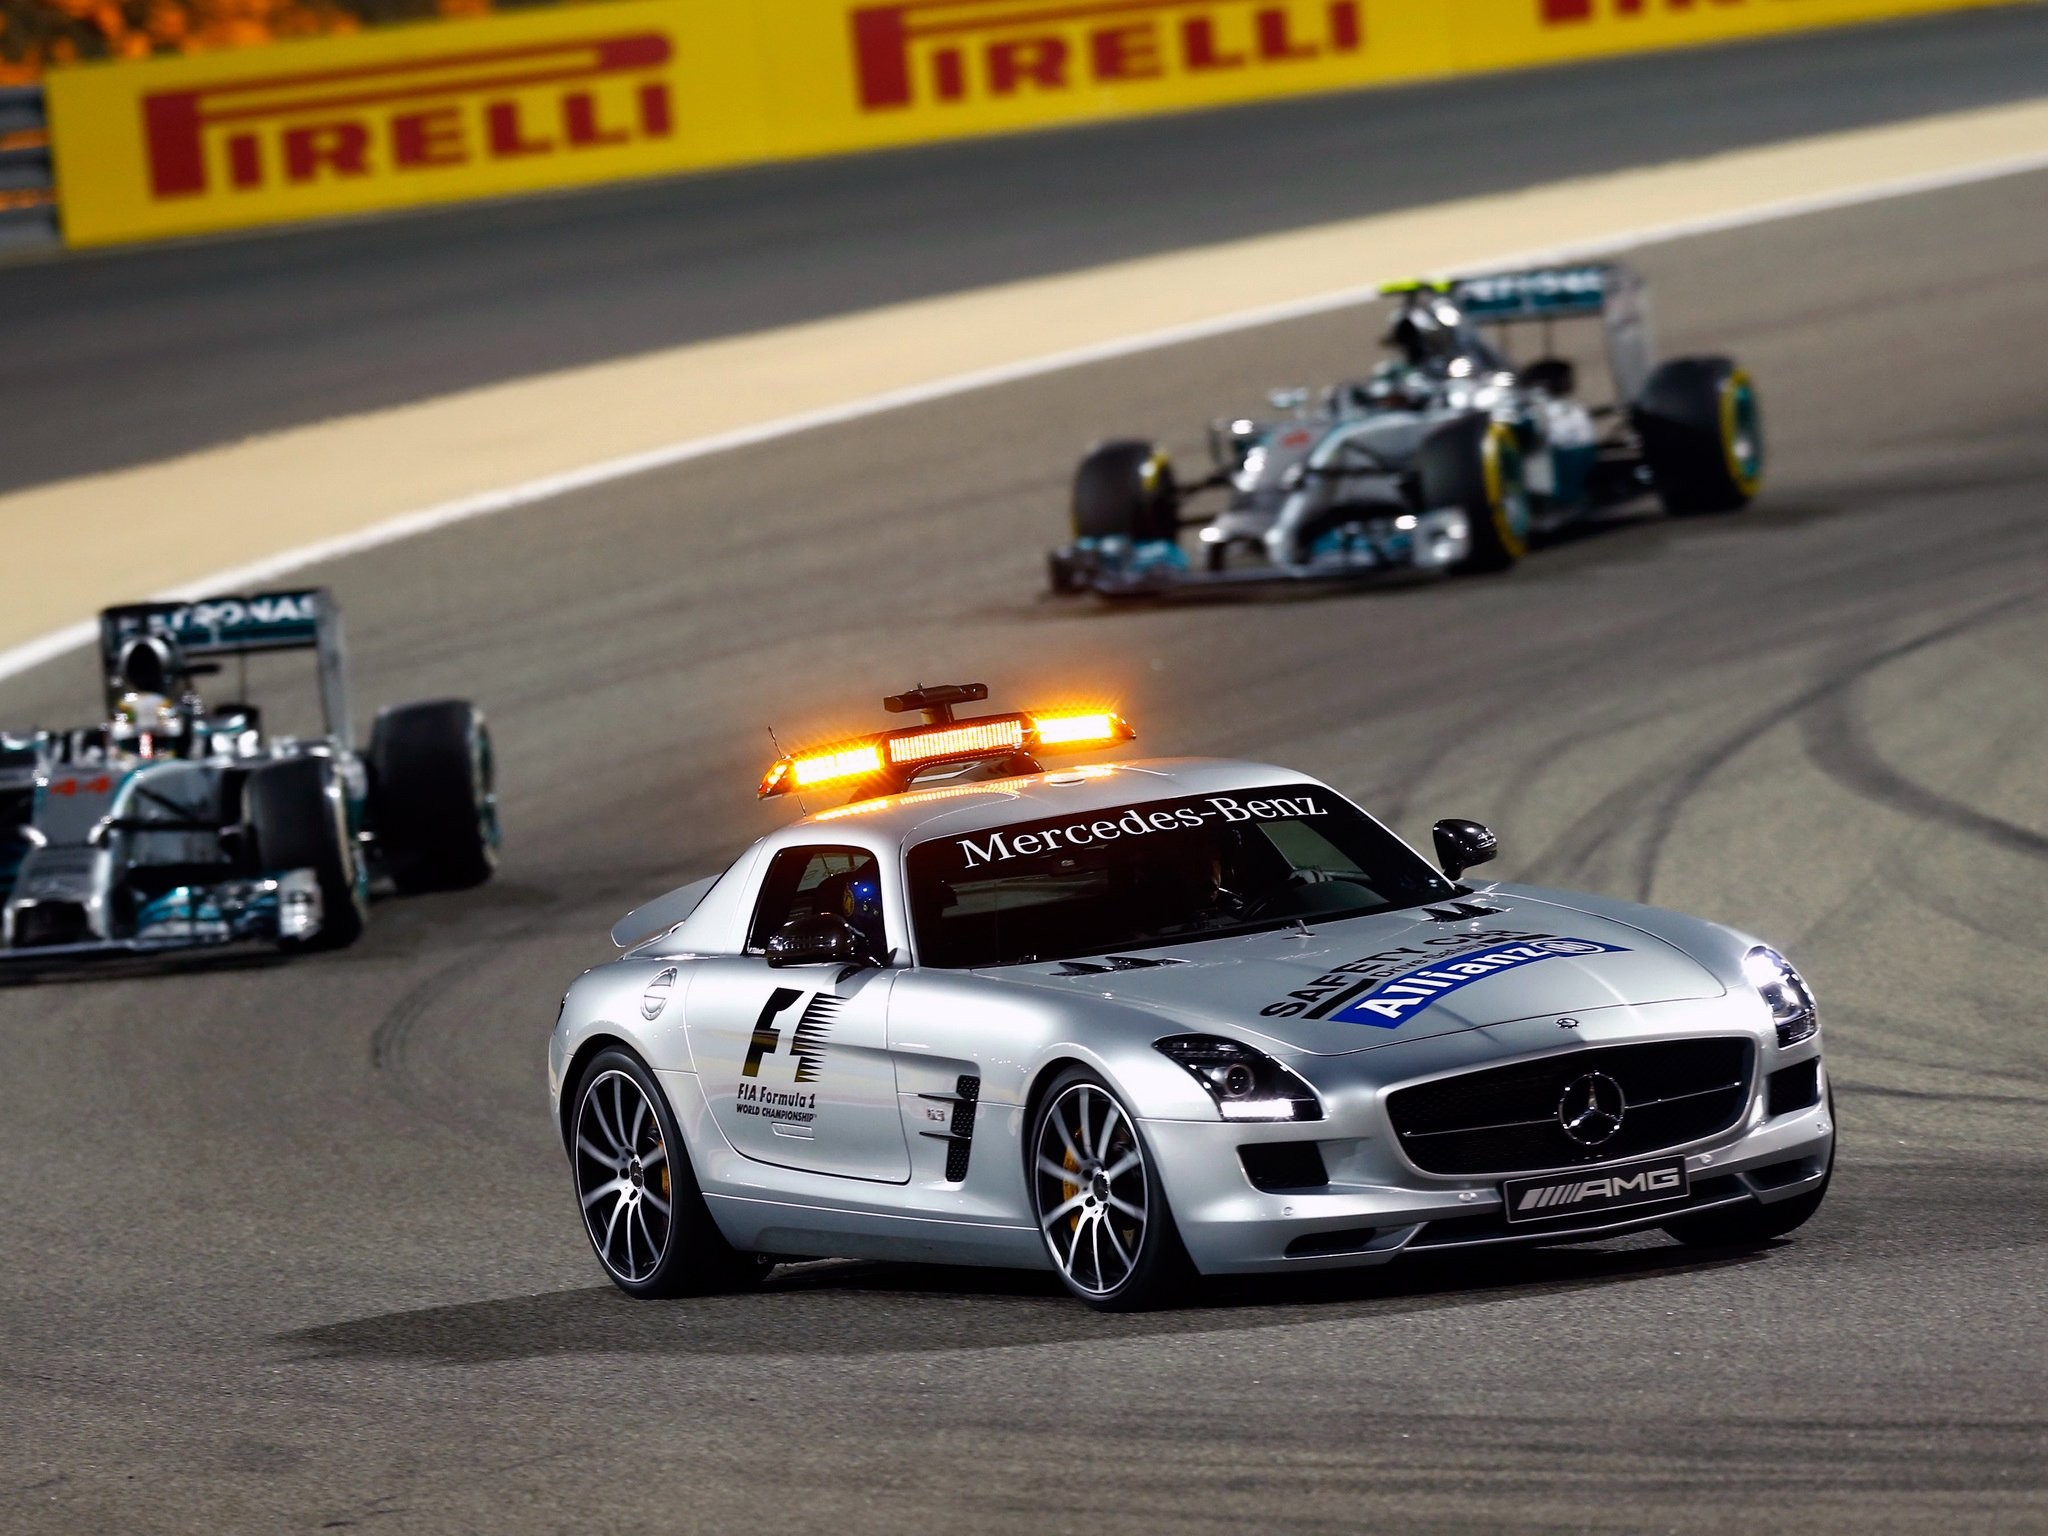 General 2048x1536 car vehicle sports car Formula 1 safety car Mercedes-Benz SLS AMG supercars lights race tracks world champion Grand Prix Bahrain Lewis Hamilton Nico Rosberg Mercedes F1 depth of field Mercedes-Benz